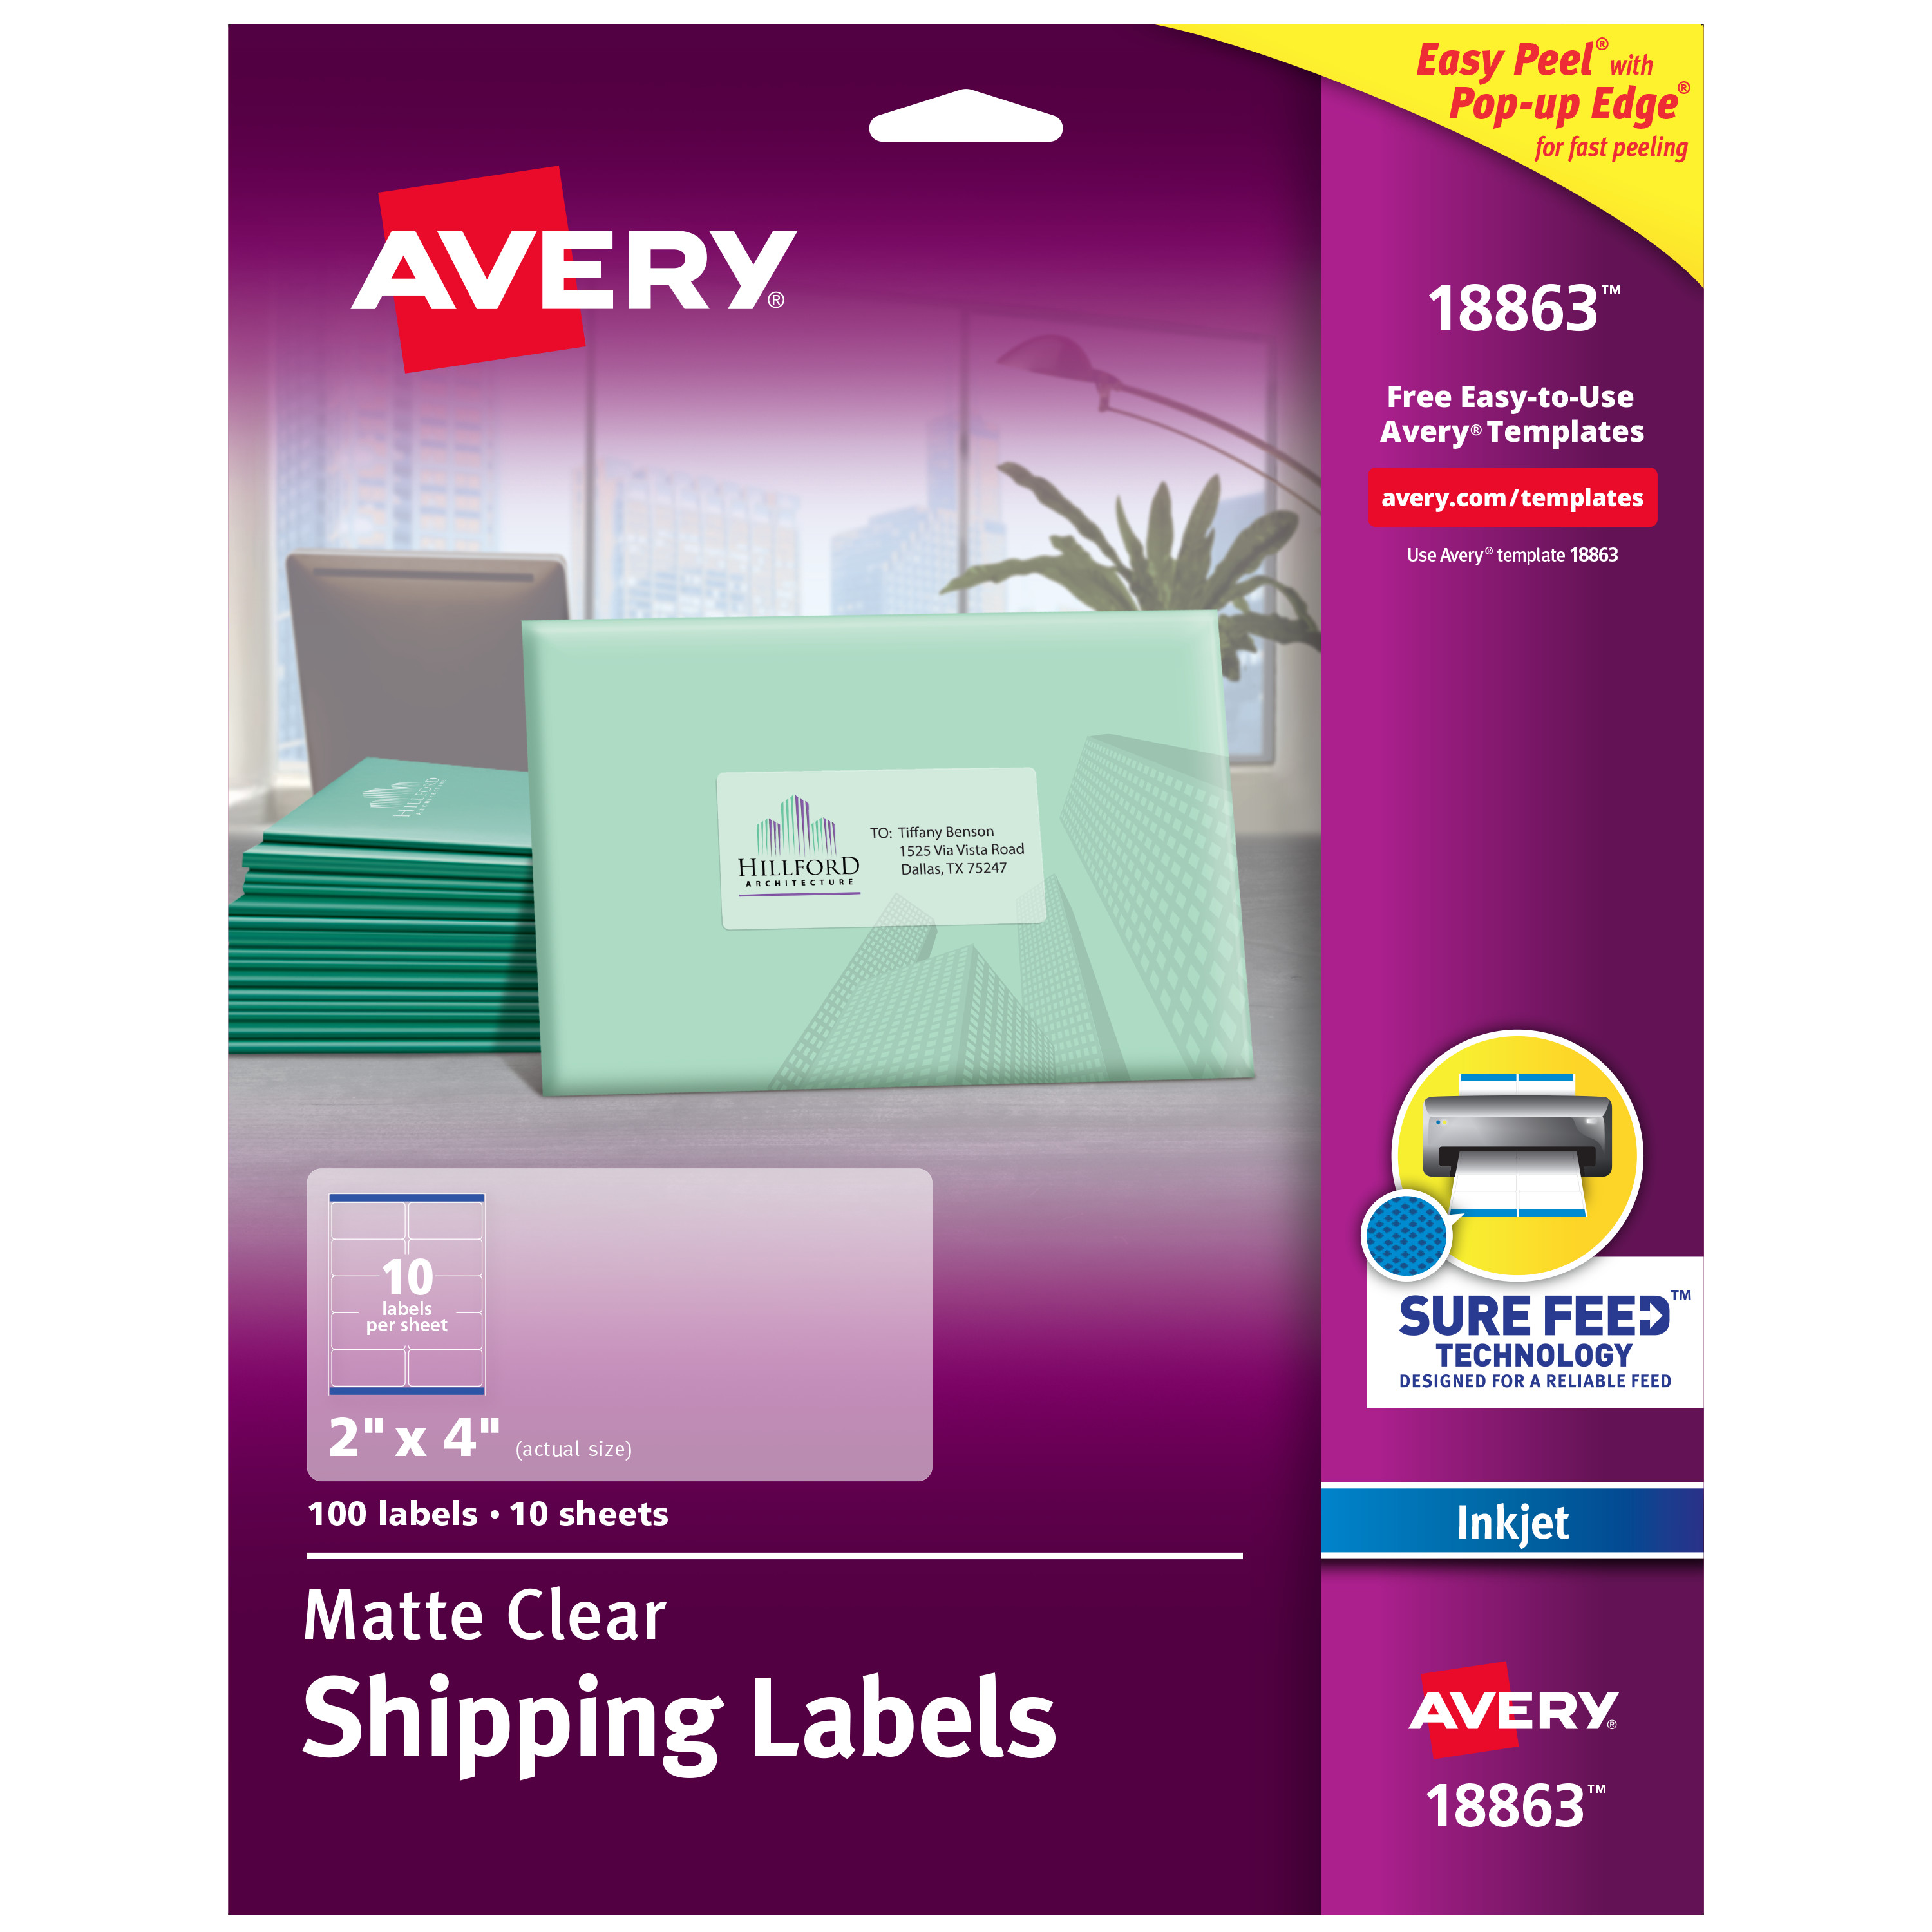 Carton White In Blank To The Self Labeling 21 x 7 100 x Table Signs Name Tags Large 5 cm